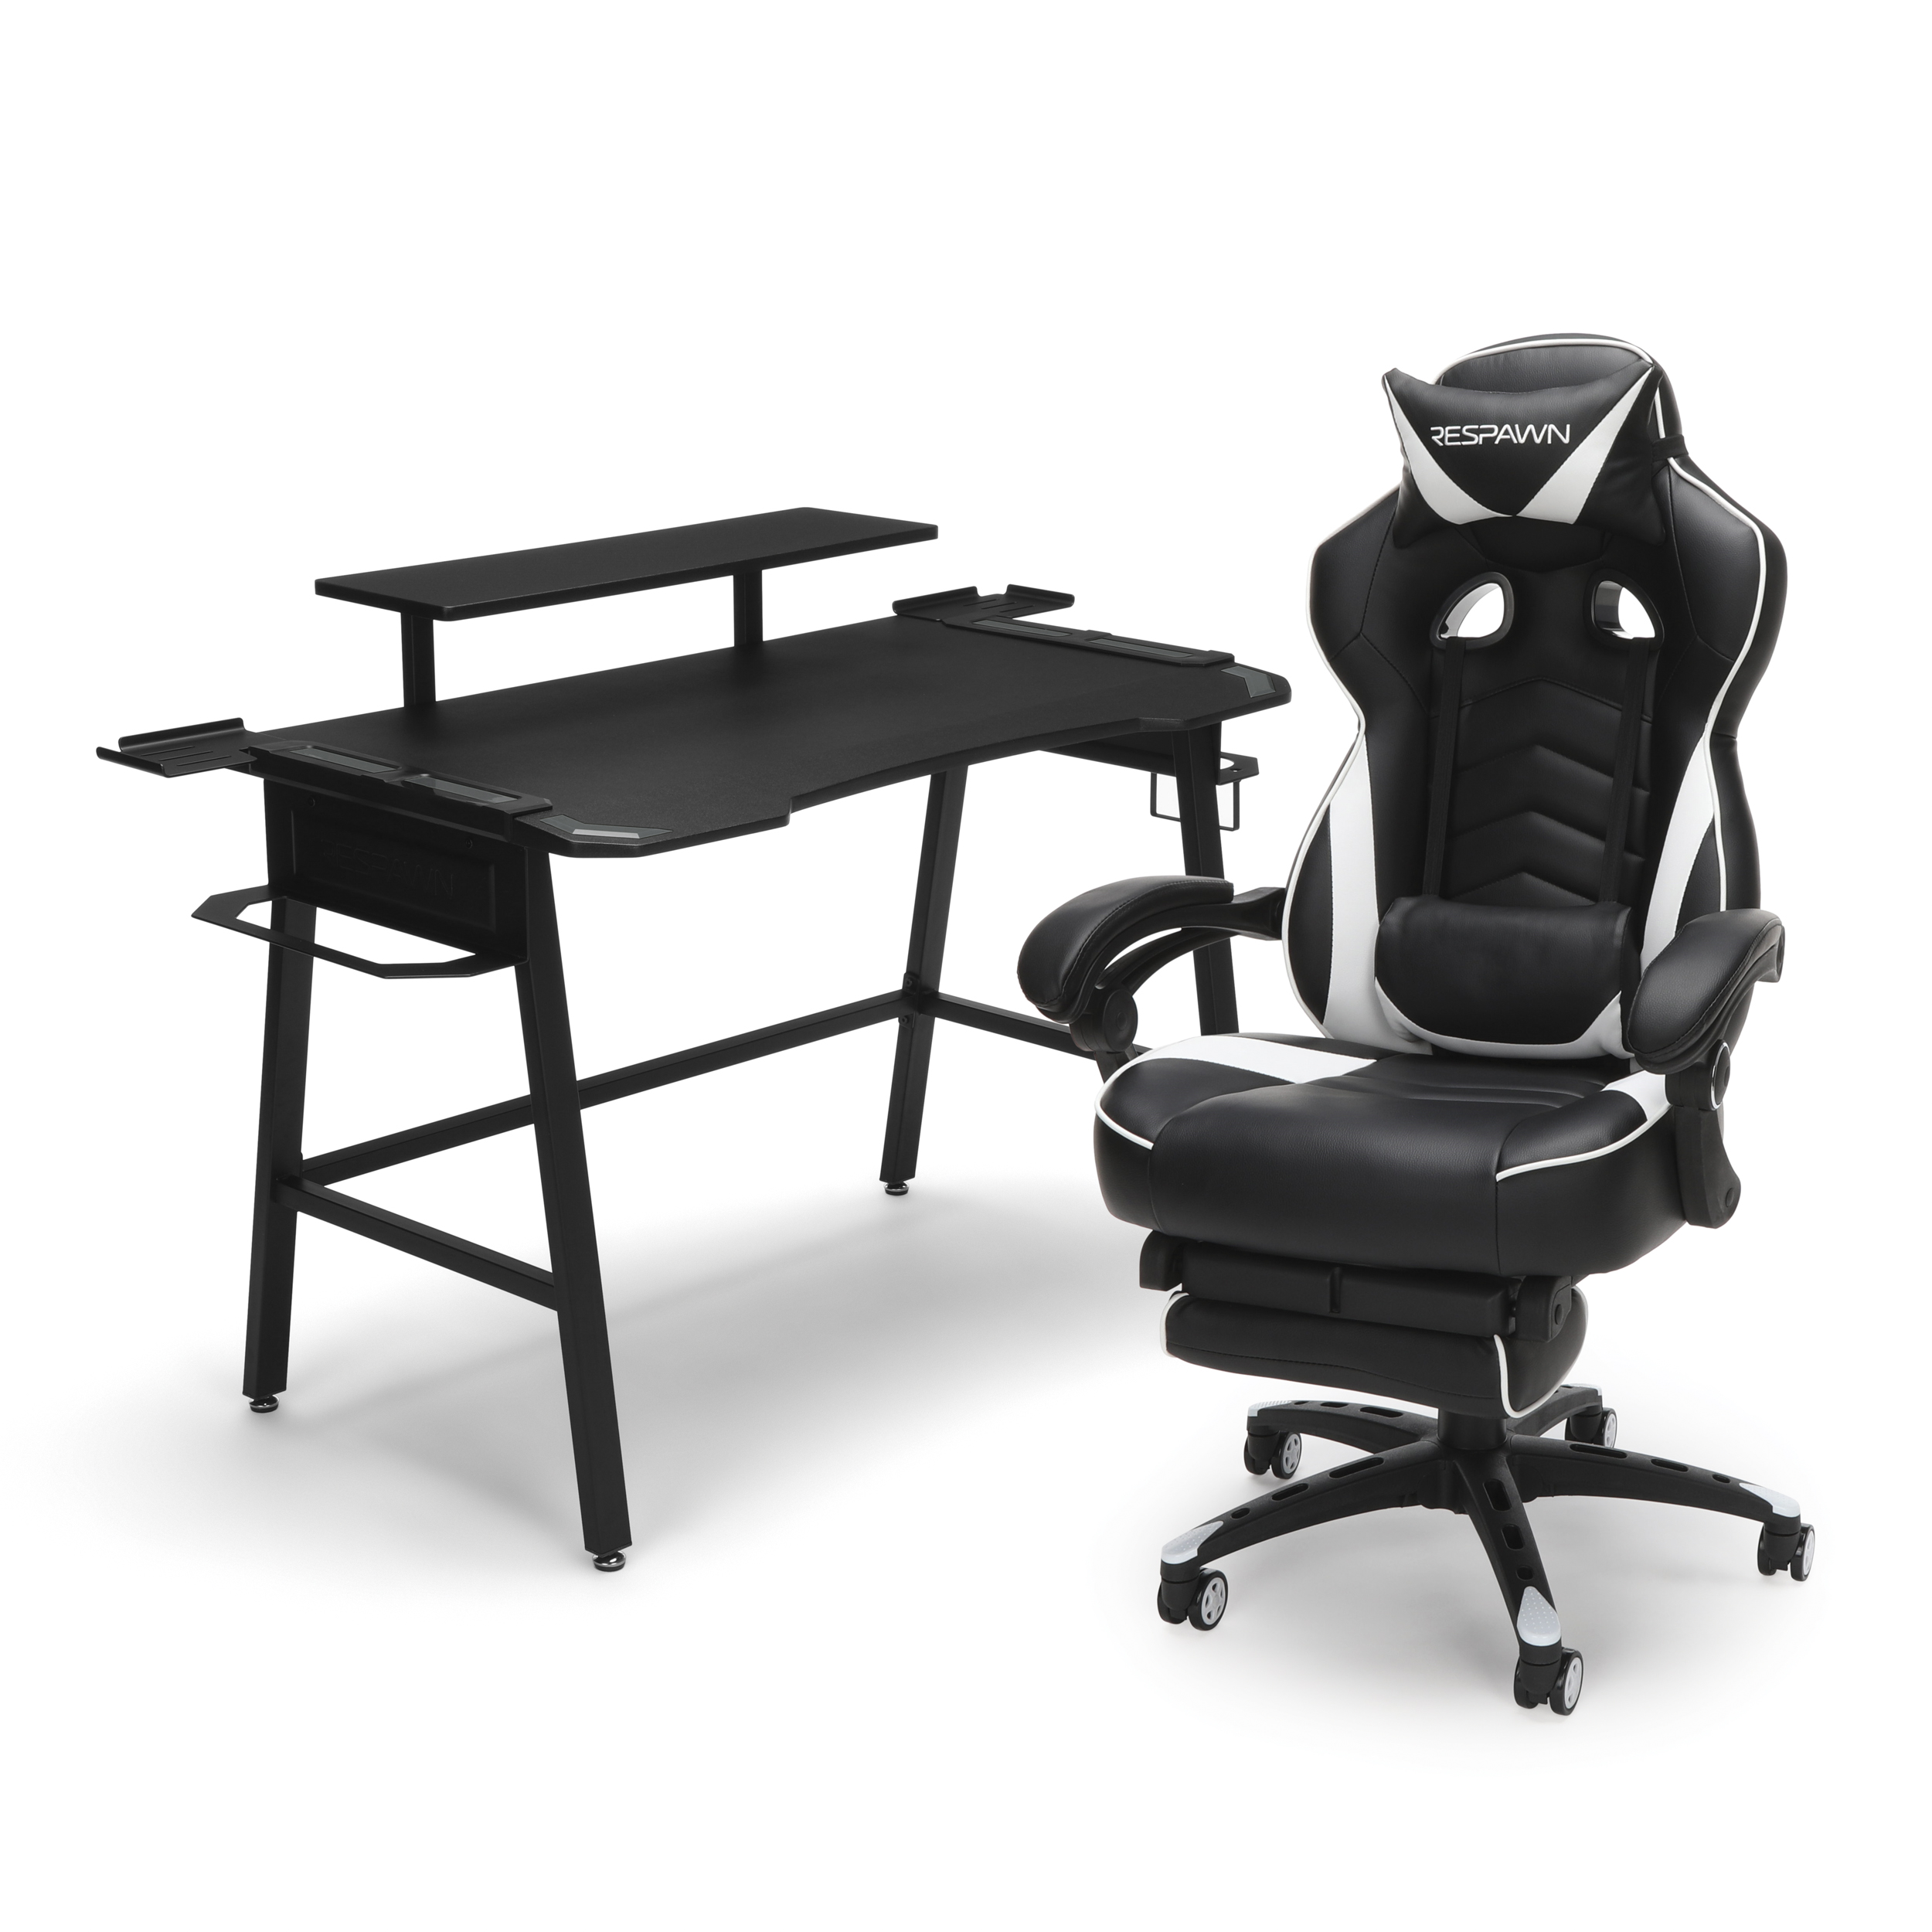 RESPAWN Gaming Chair (RSP-110) And Gaming Desk (RSP-1010